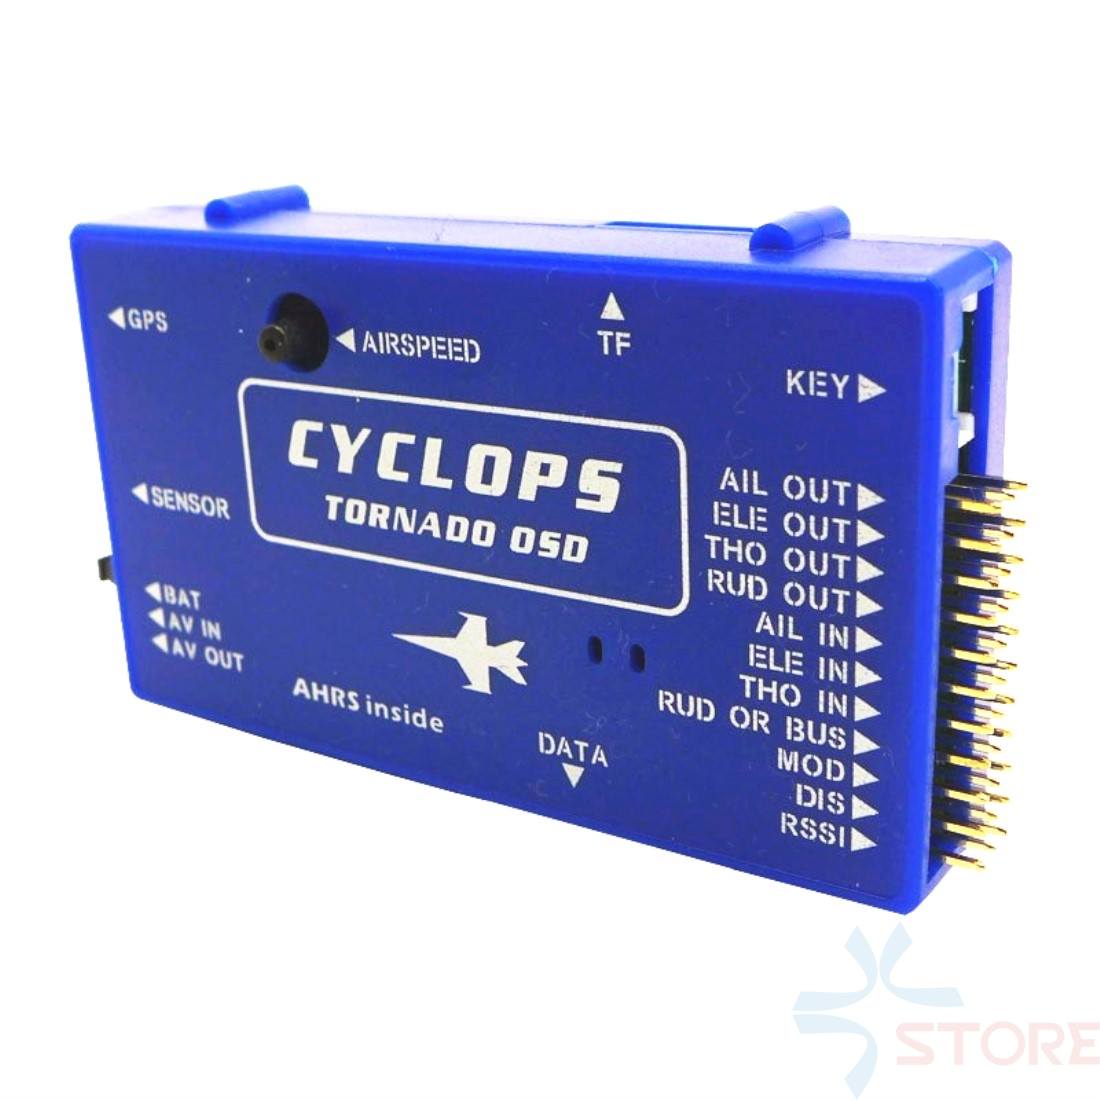 CYCLOPS TORNADO OSD System W/ GPS Latest Version V1.1 with 3D Flying / Airspeed Sensor for RC Airplane kam cyclops